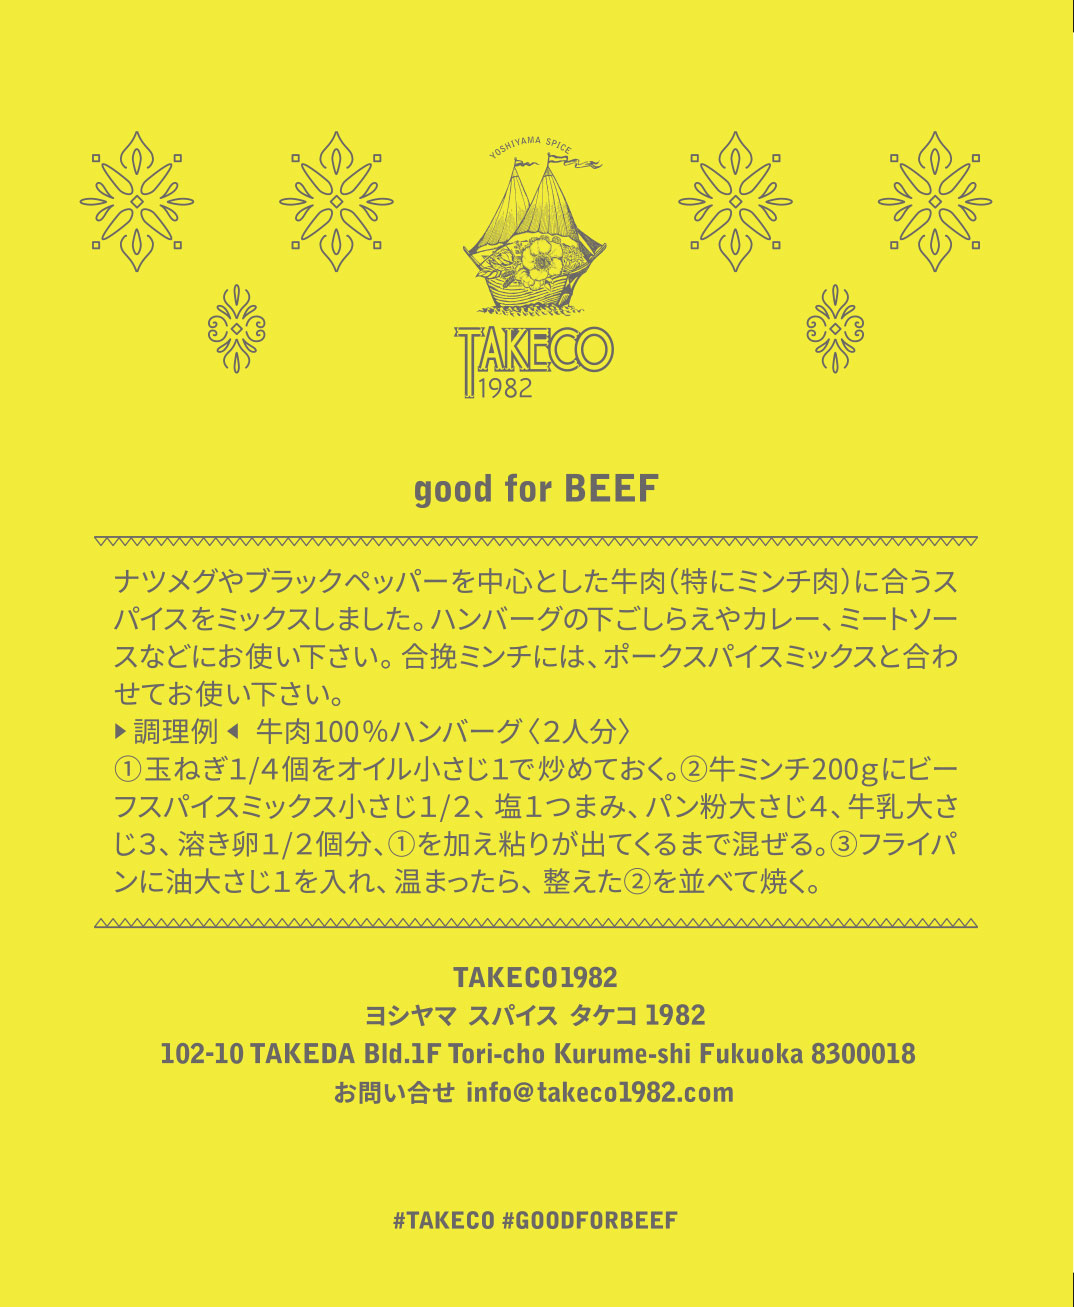 good for BEEFのレシピ